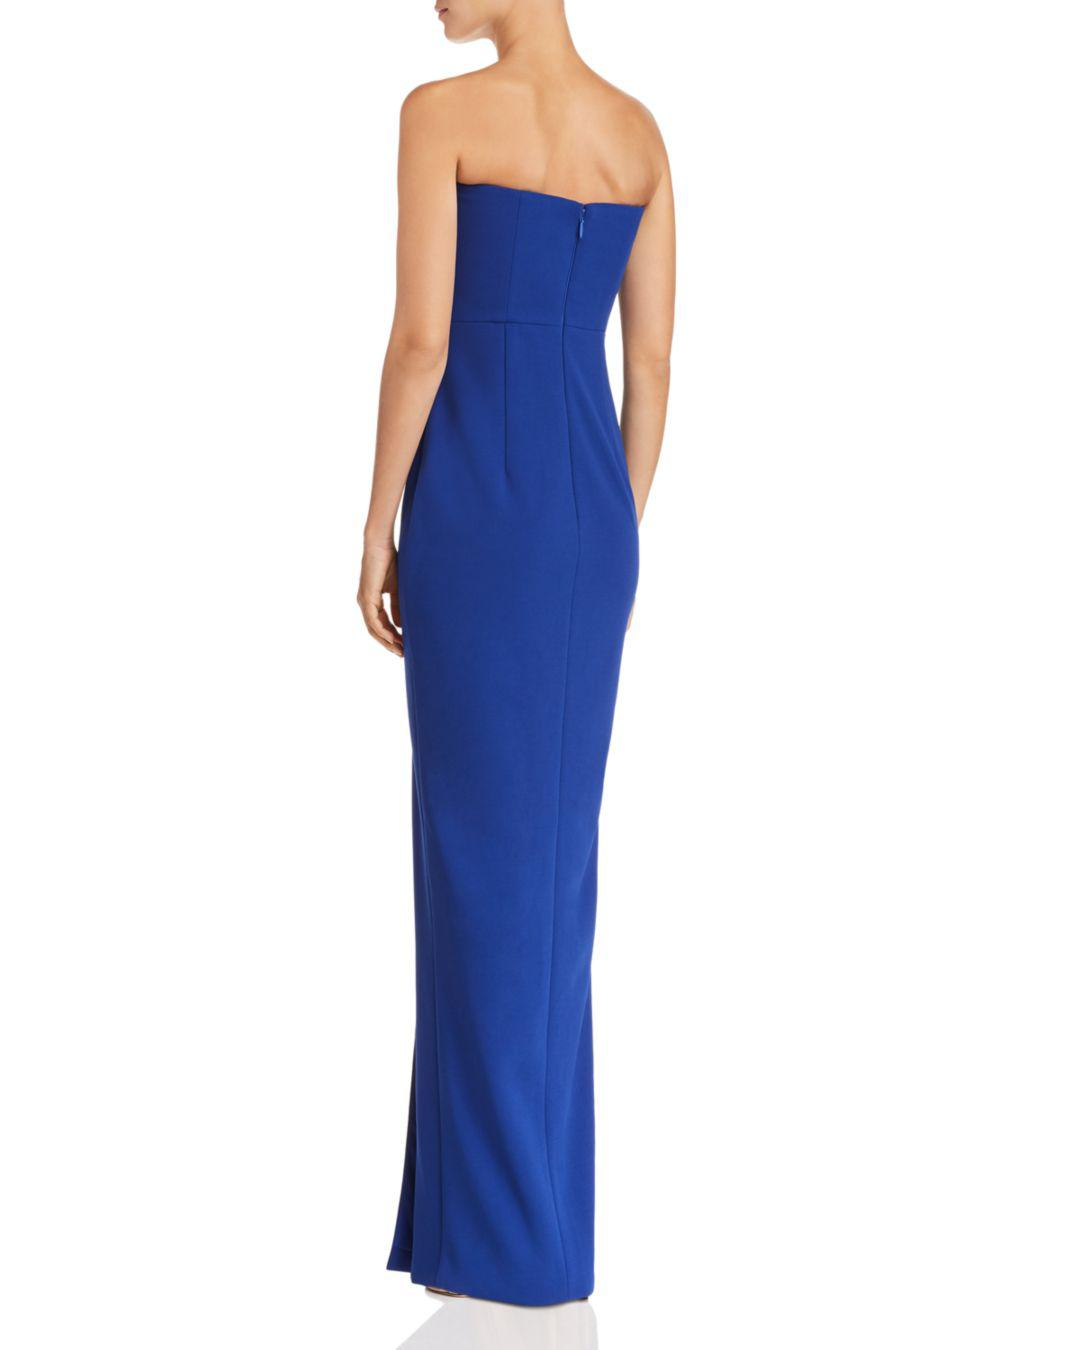 5b00f1f4a1371 Lyst - Bariano Strapless Column Gown in Blue